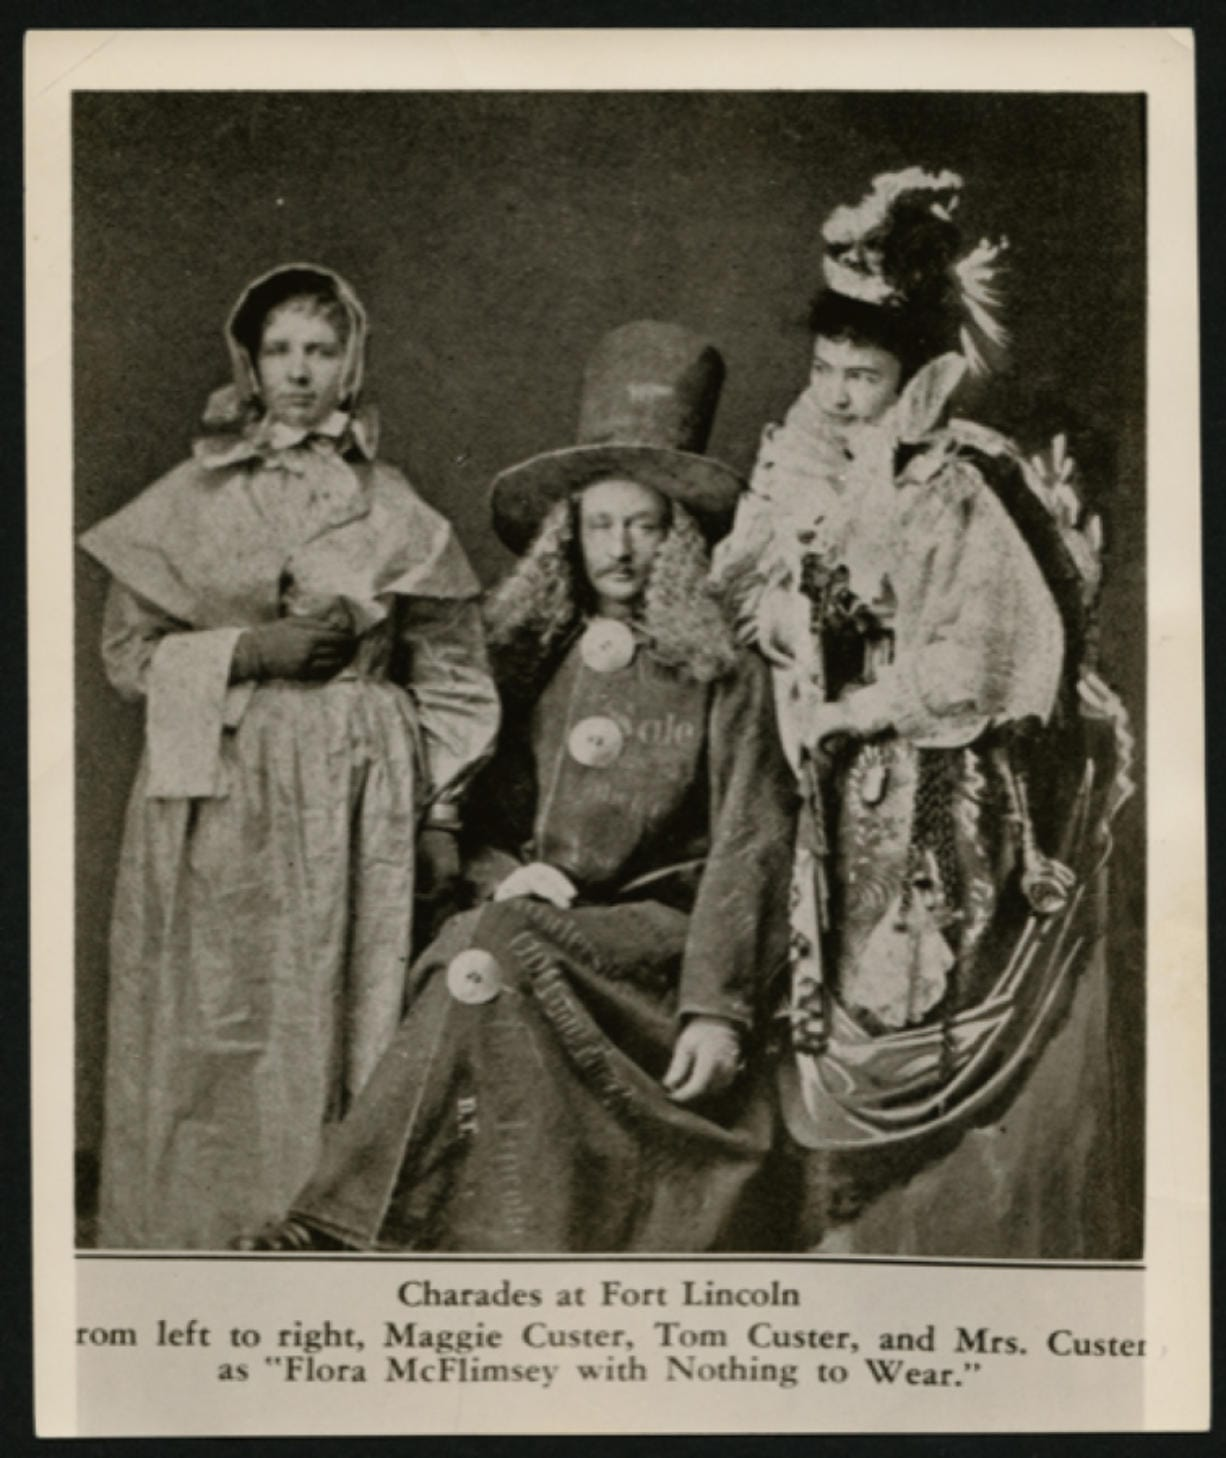 Taken in 1876 at Fort Abraham Lincoln in the Dakota Territory, this photo shows three members of Gen. George Armstrong Custer's family dressed to play charades. Custer's sister, Maggie (left), his brother, Tom (center) and his wife Libby (right). Custer, his brothers, Tom and Boston, and John Calhoun, Maggie's husband, perished in June 1876 during the Battle at Little Bighorn. Bereft and husbandless, Maggie had to fend for herself and in 1885 she visited the Vancouver Barracks and her brother-in-law.